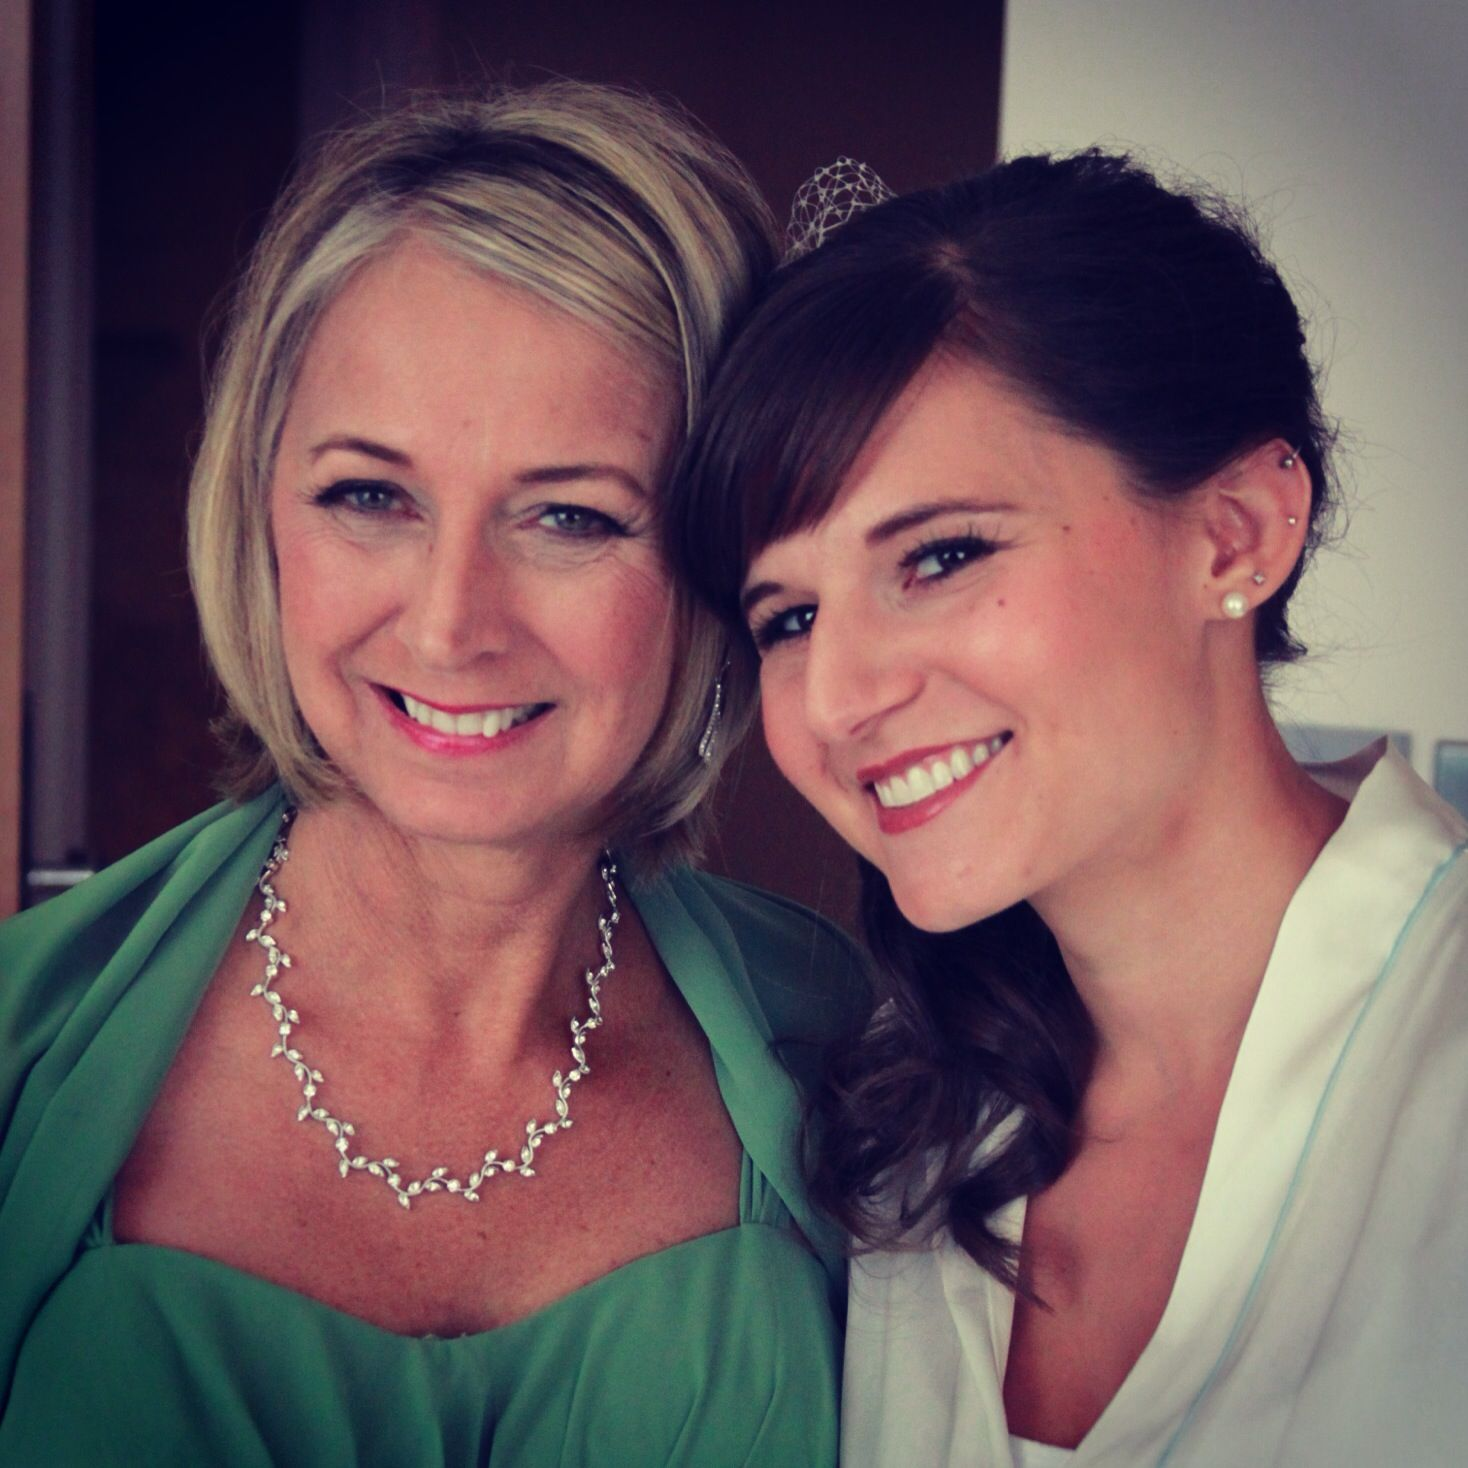 Makeup for bride and mother of the bride by KMT Beauty